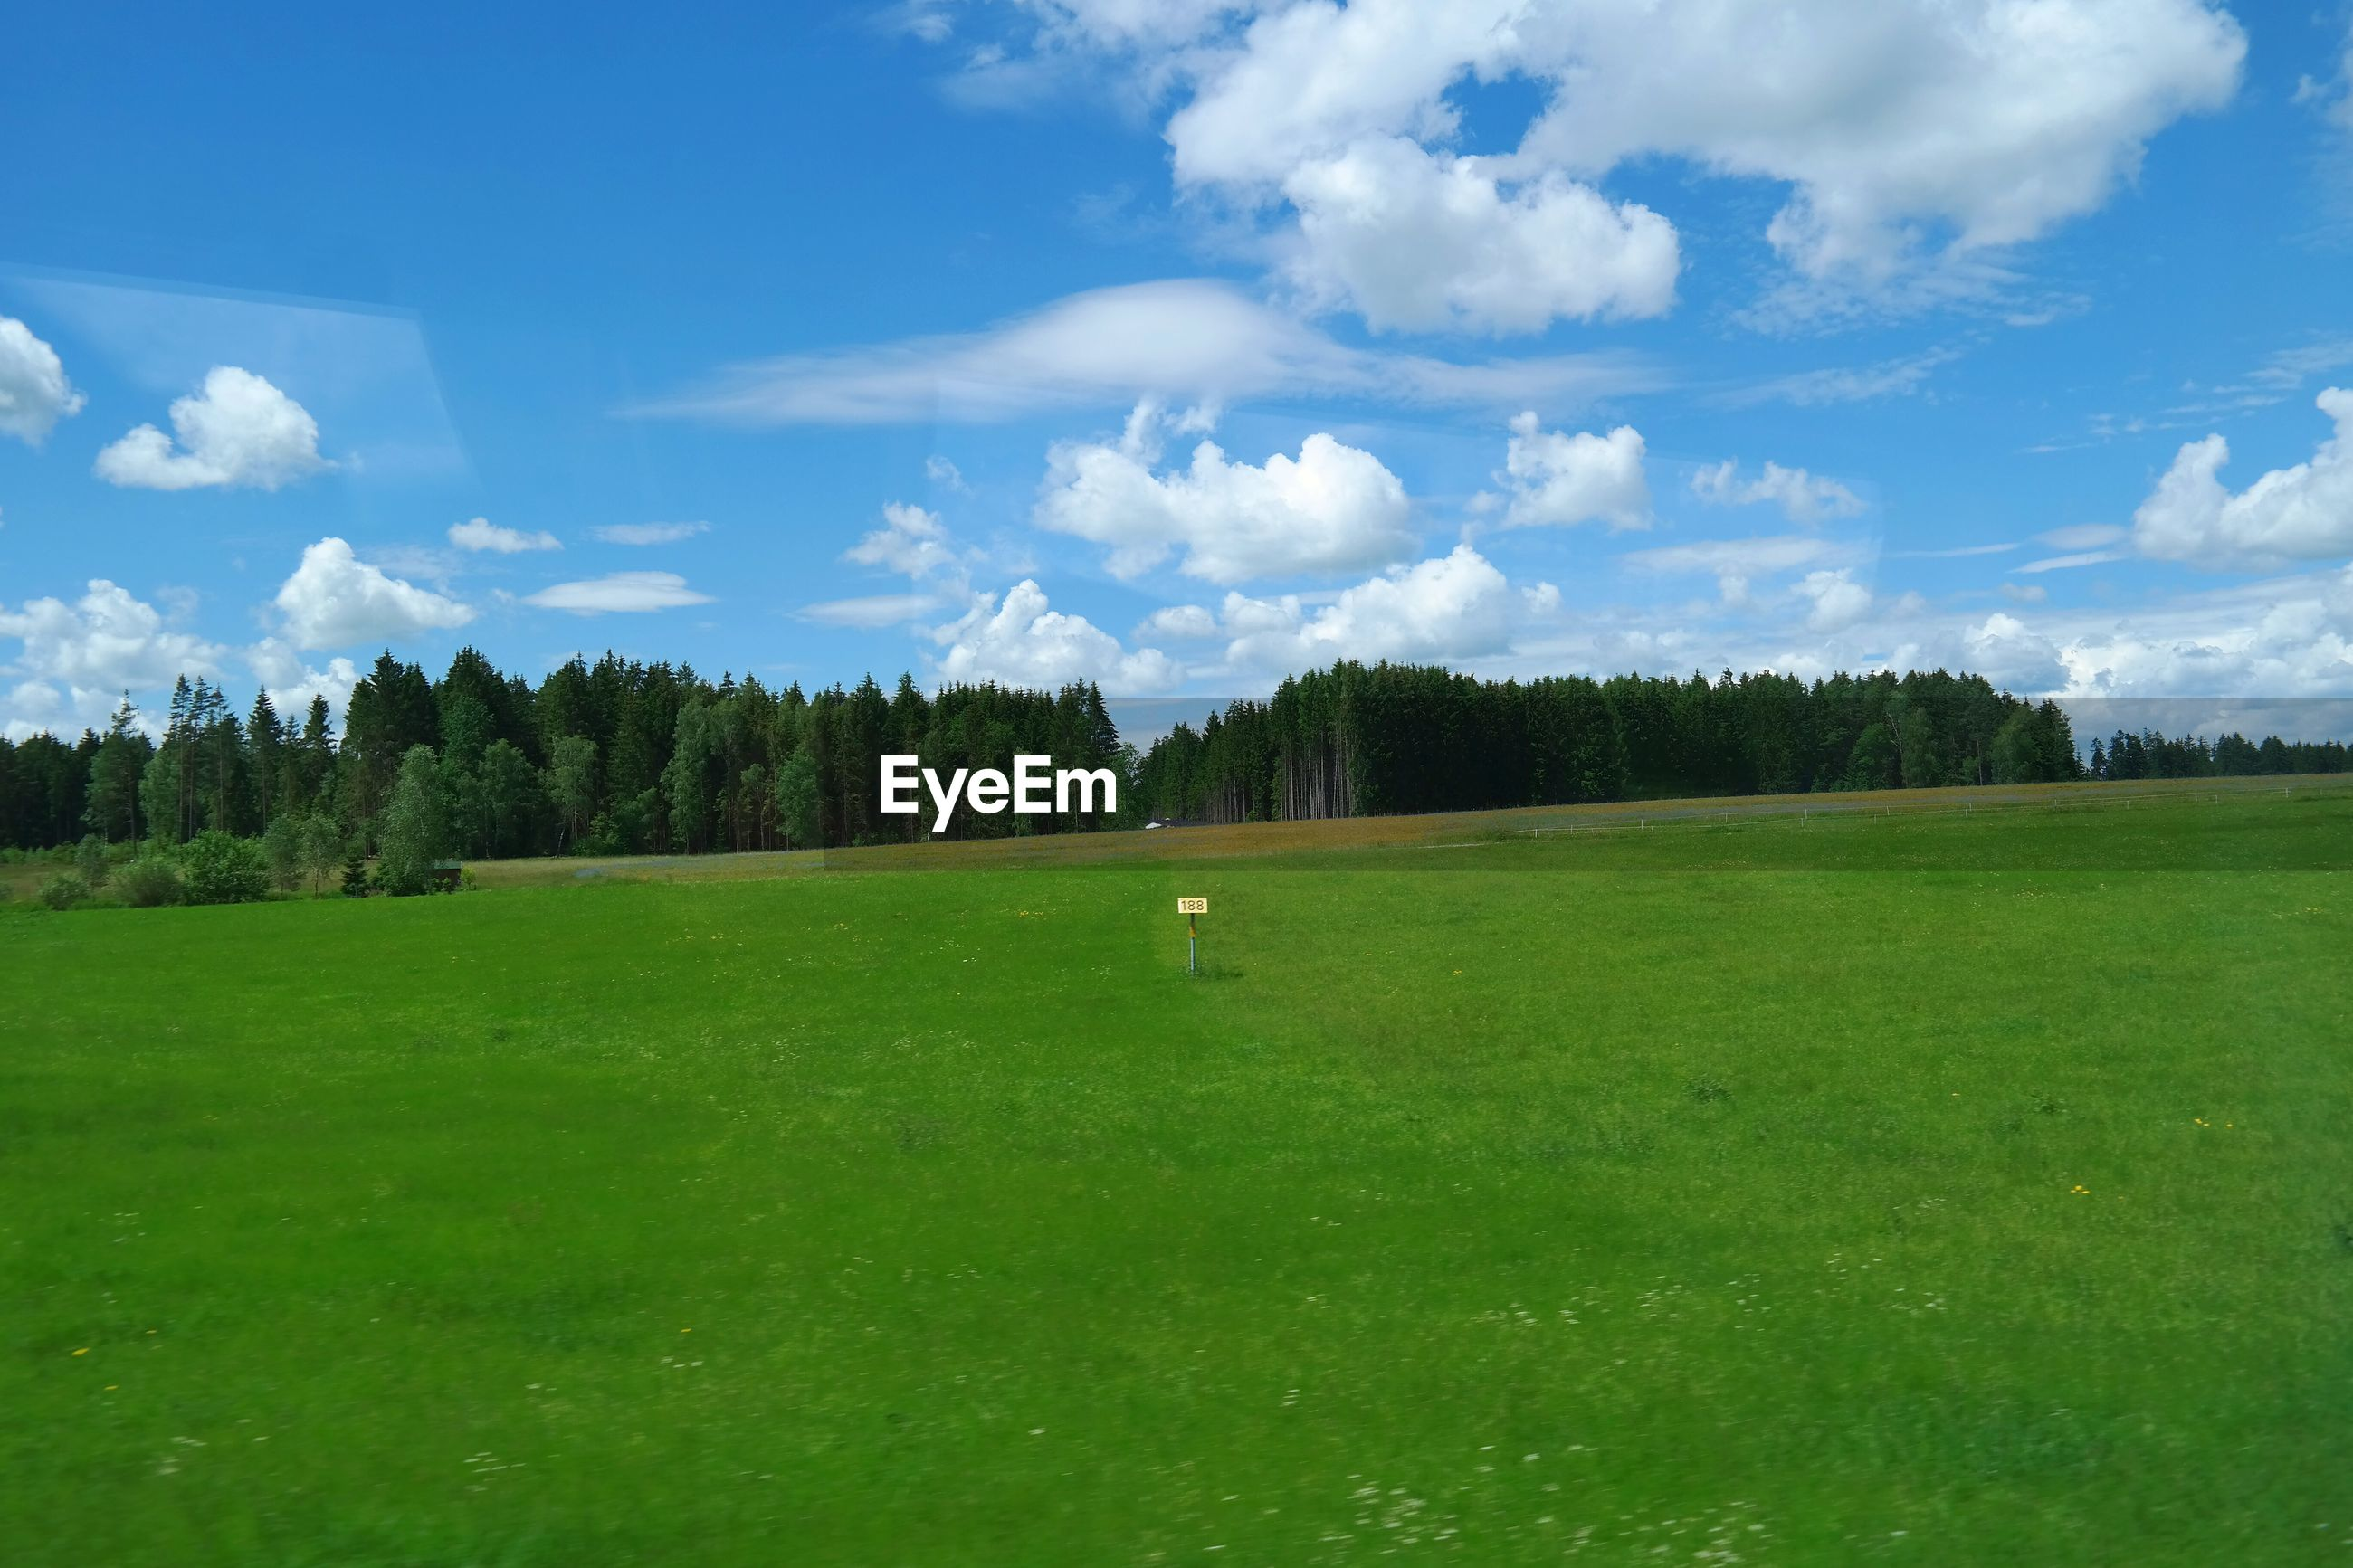 SCENIC VIEW OF GRASSY LANDSCAPE AGAINST CLOUDY SKY